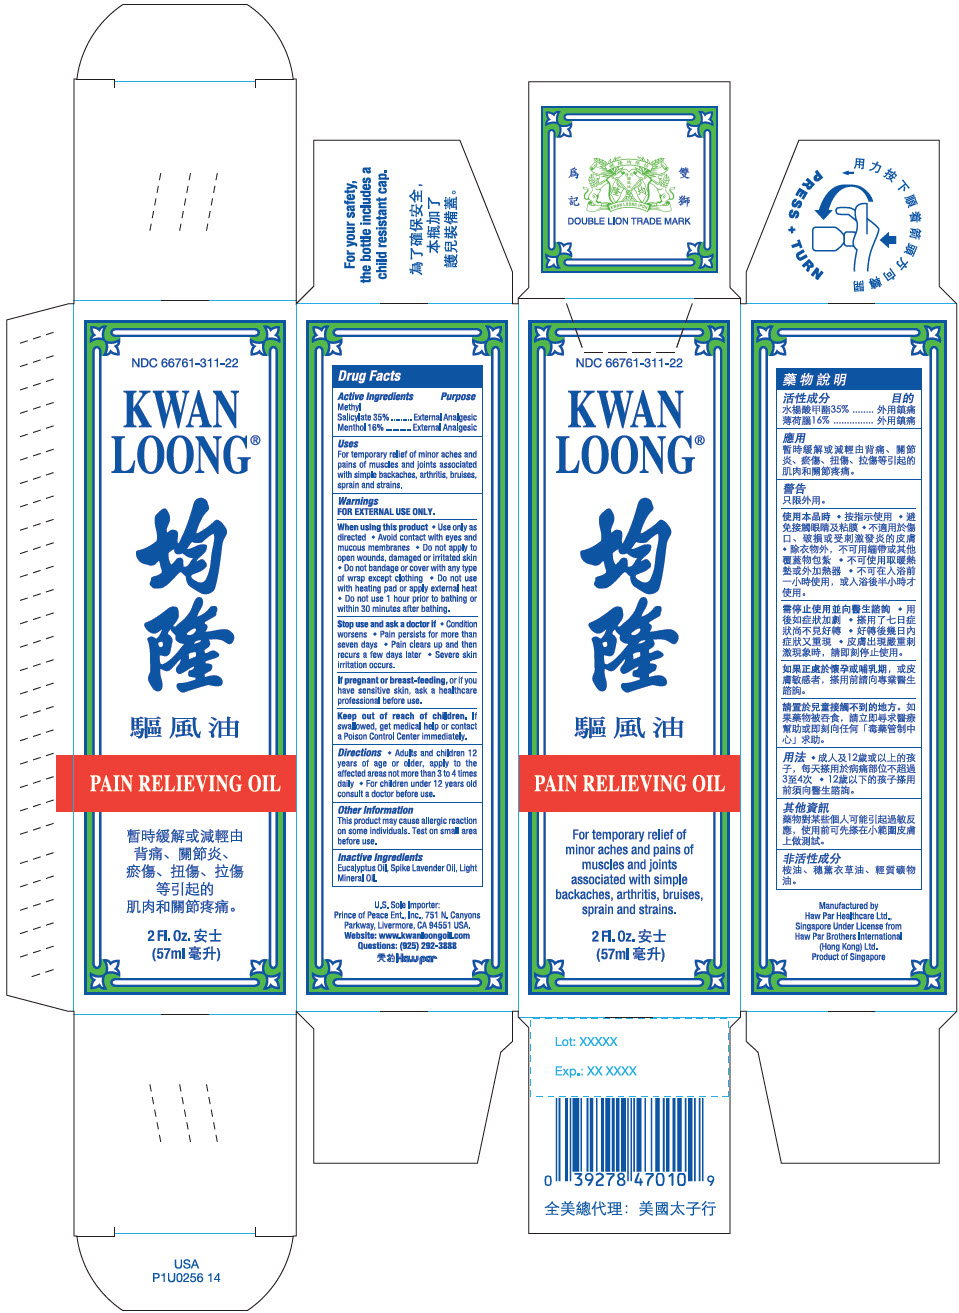 PRINCIPAL DISPLAY PANEL - 57 ml Bottle Box